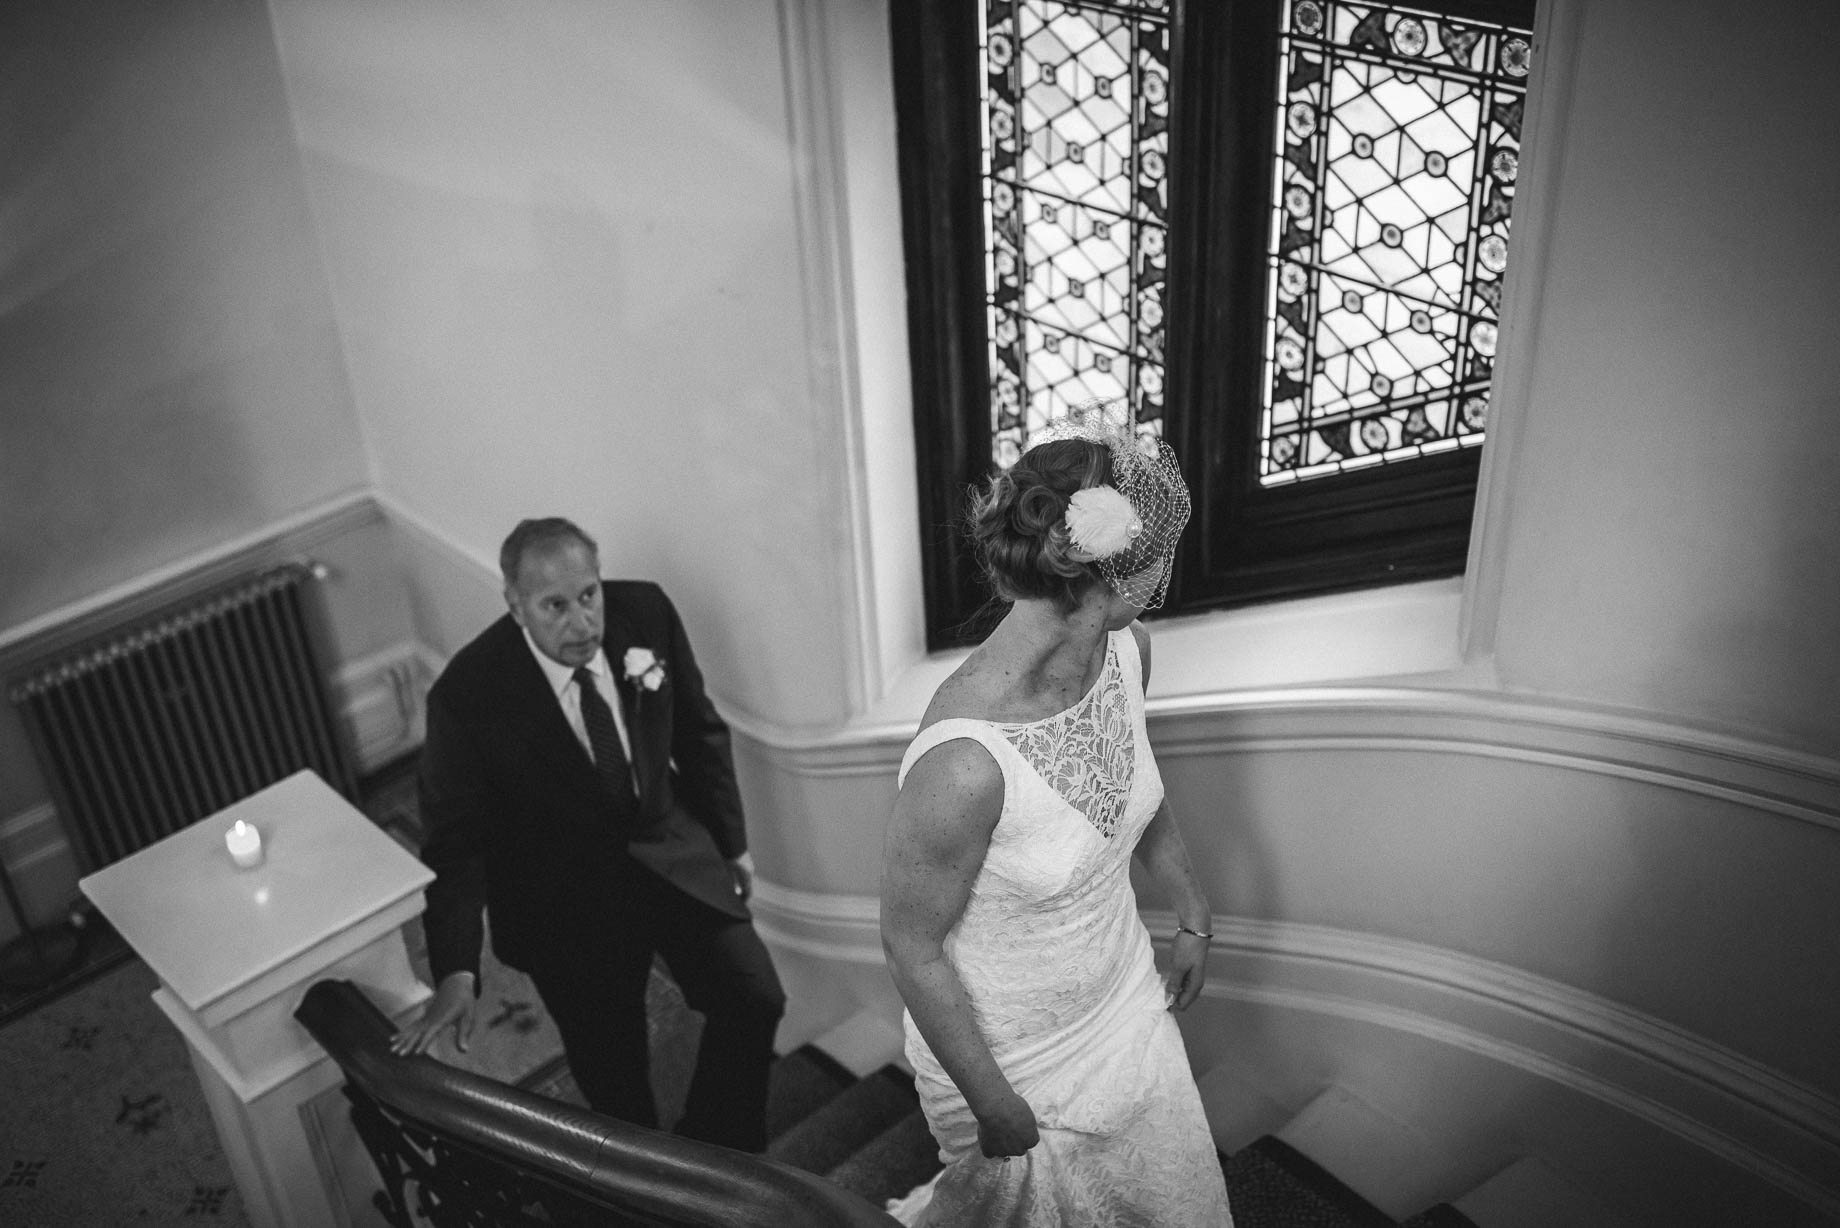 Bllomsbury House wedding photography in London - Katie and Taylor (33 of 156)